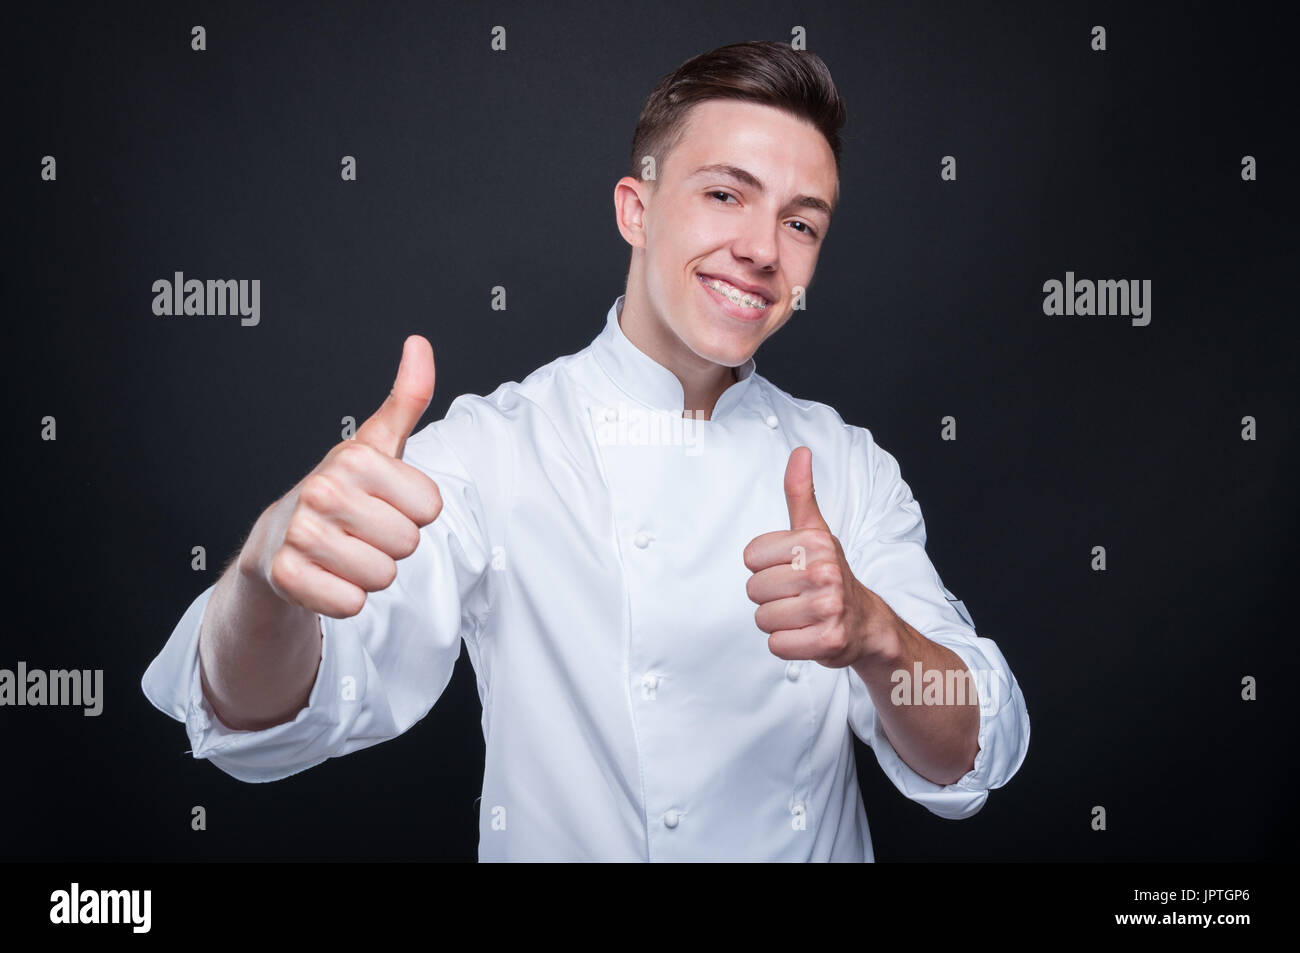 Happy successful cook looking confident and  indicate double like sign on black background - Stock Image